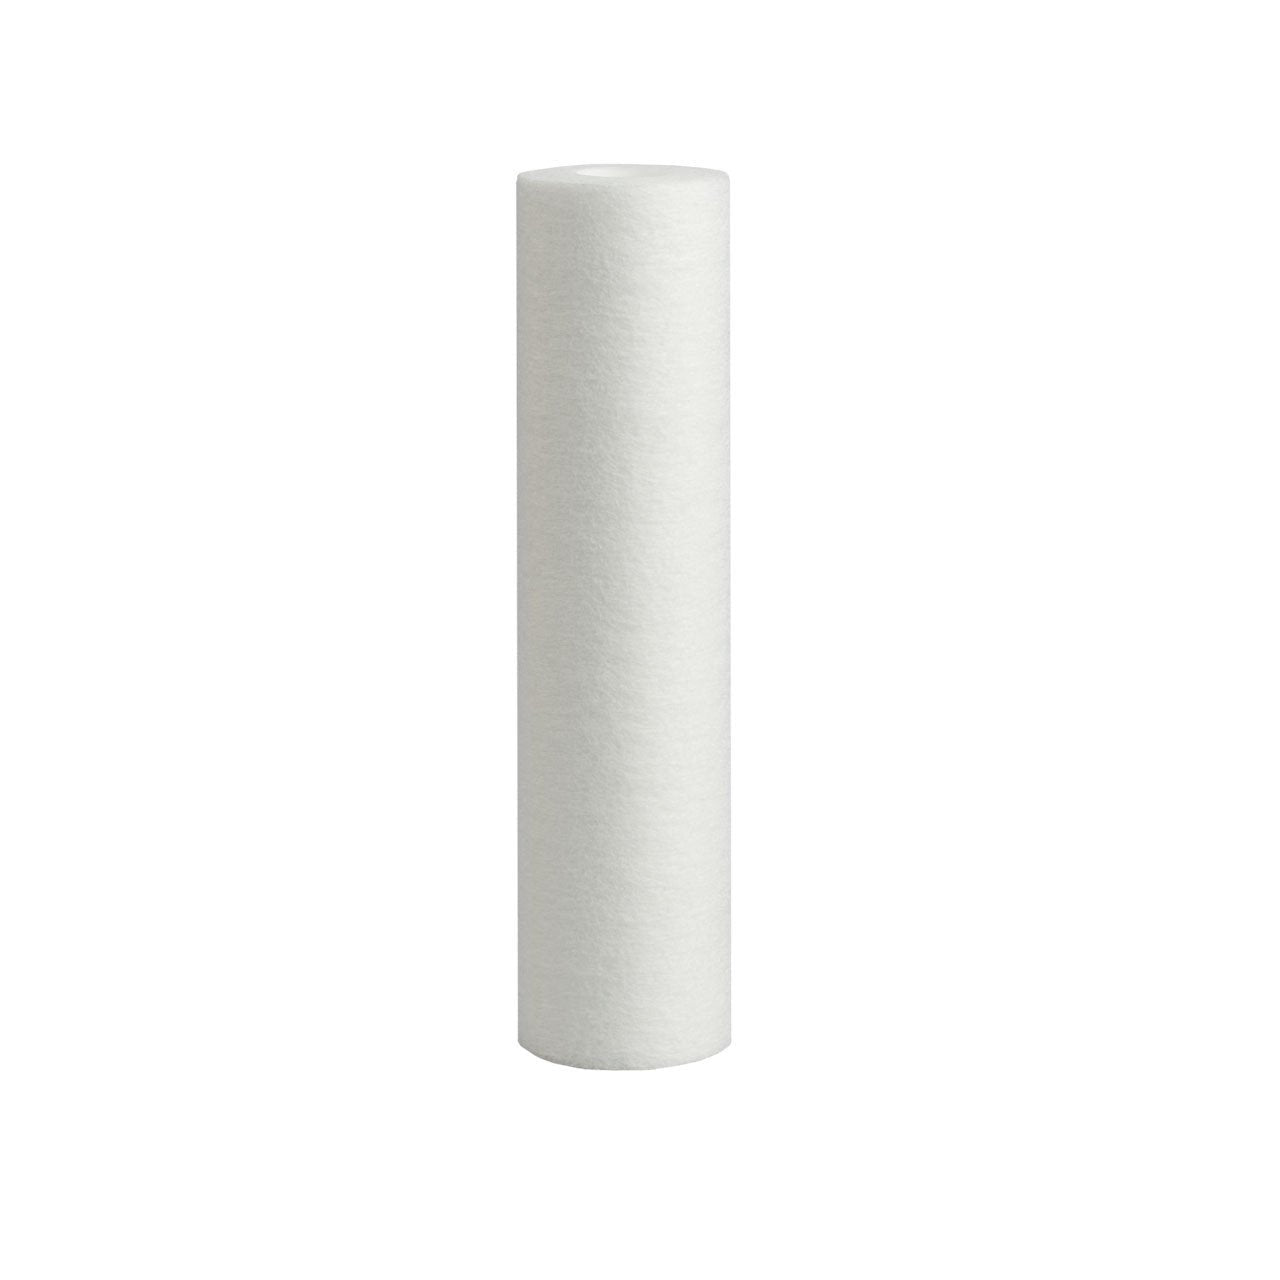 304007 - 50 Micron Sediment Filter, by Watts Premier